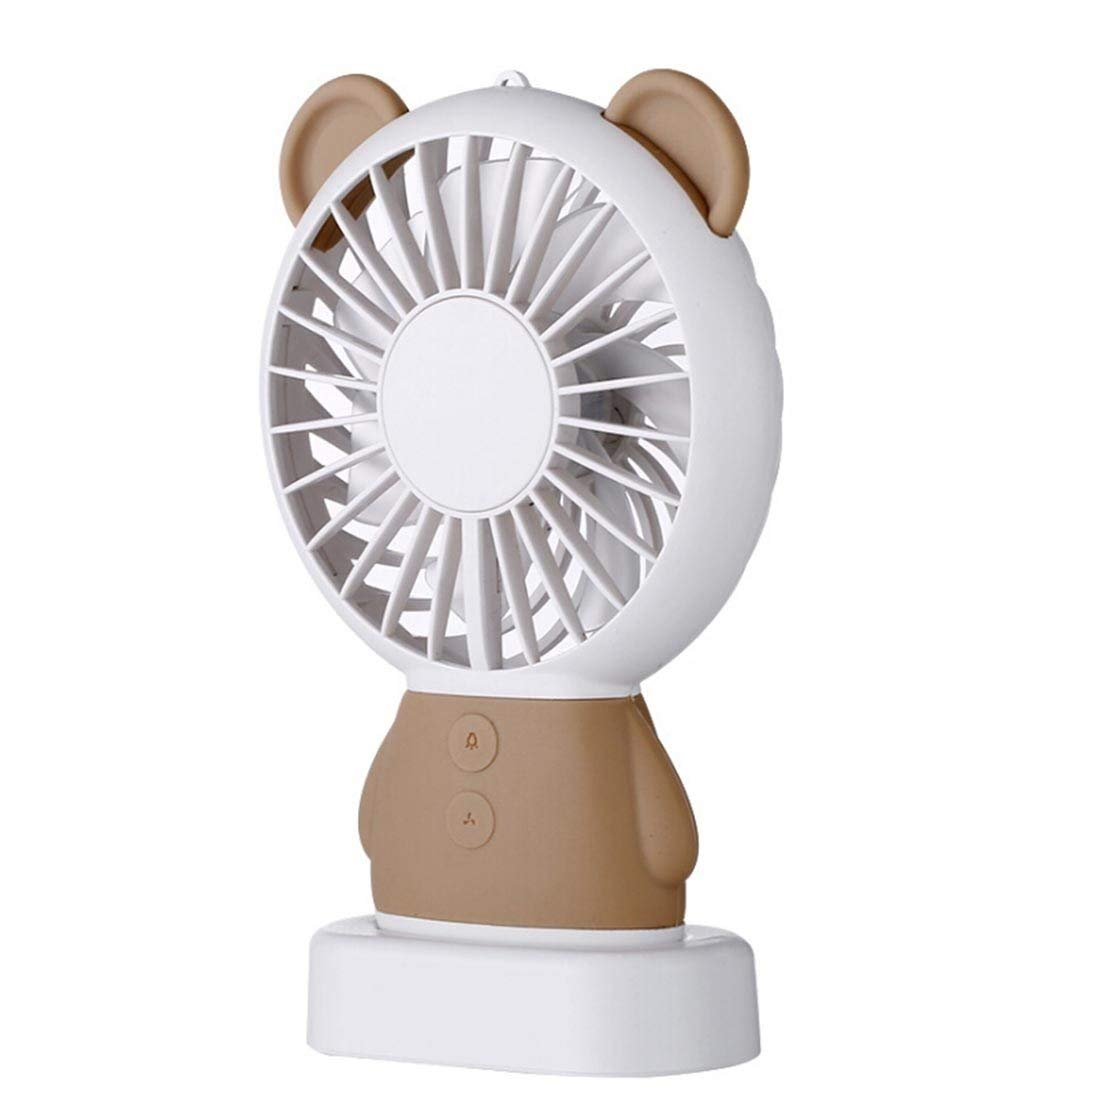 Mini Handheld Fan, YKDY Mall Portable Outdoor Cartoon Bear Shape Personal Desktop Mute Fan 2 Speed USB Charging with LED Light for Outdoor Travel & Indoor Office Desk, Dorm, More (Brown)